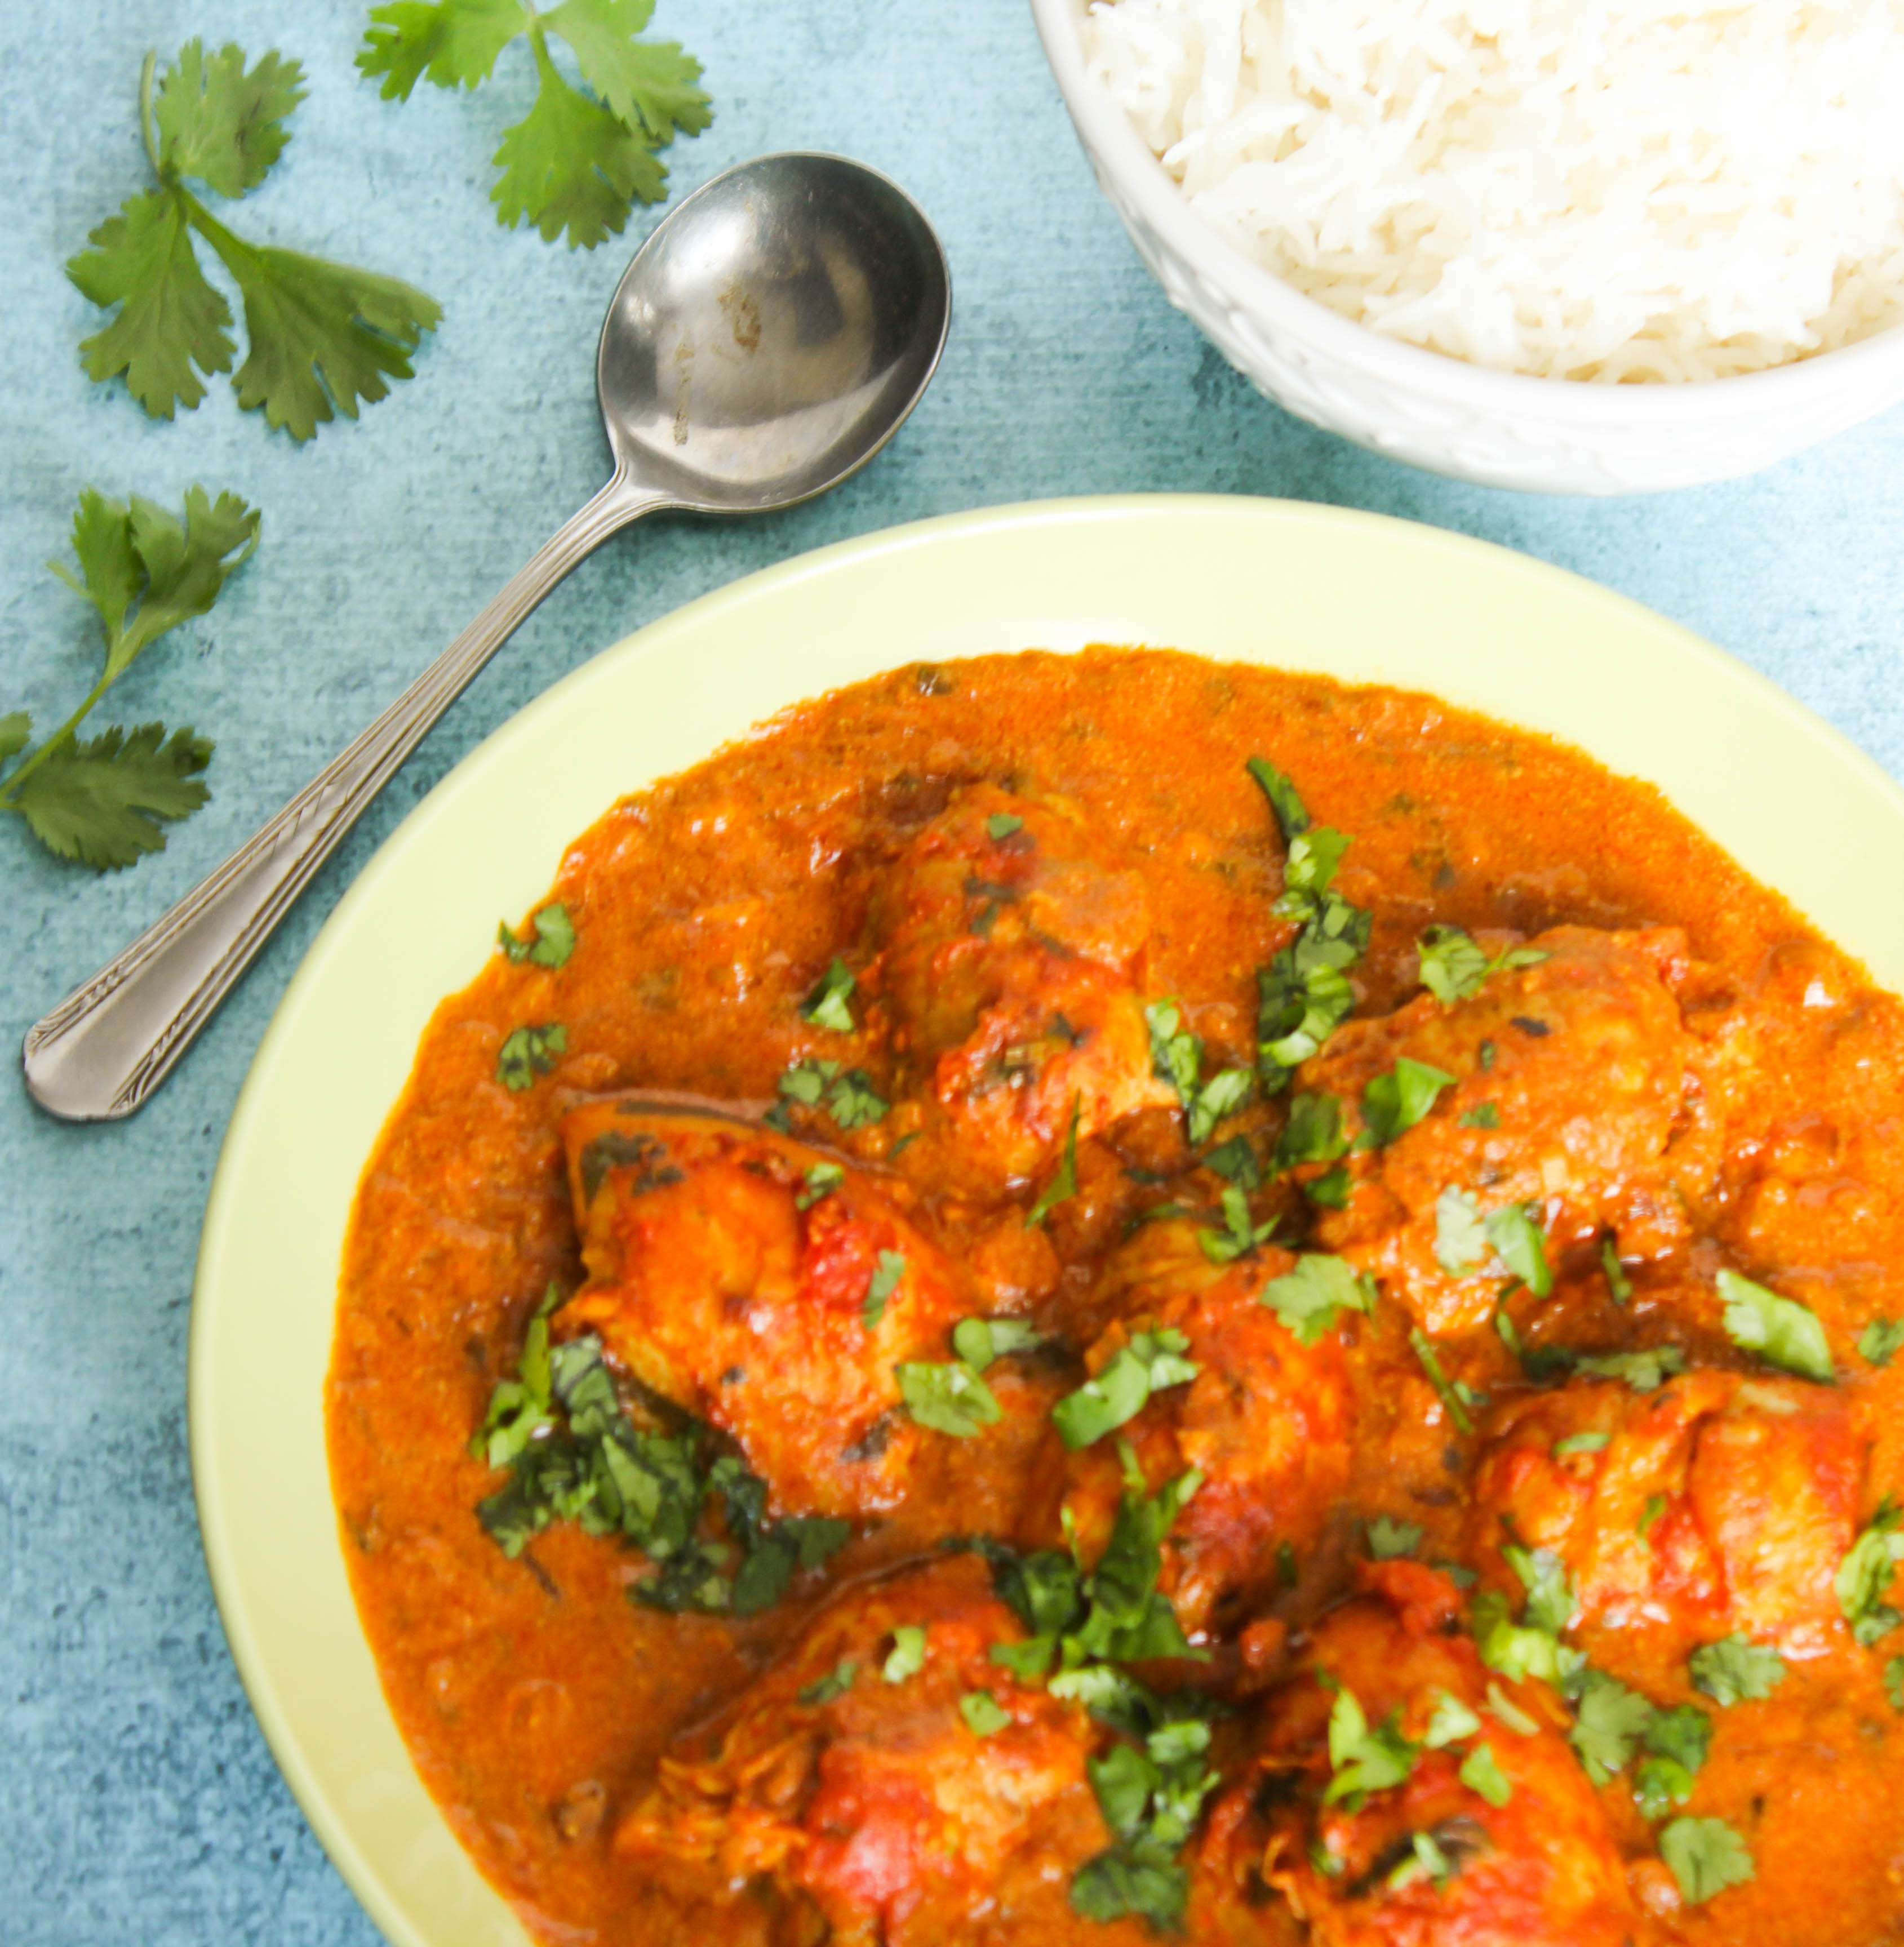 Chicken Indian Recipes  North Indian Chicken Curry Valerie s Keepers